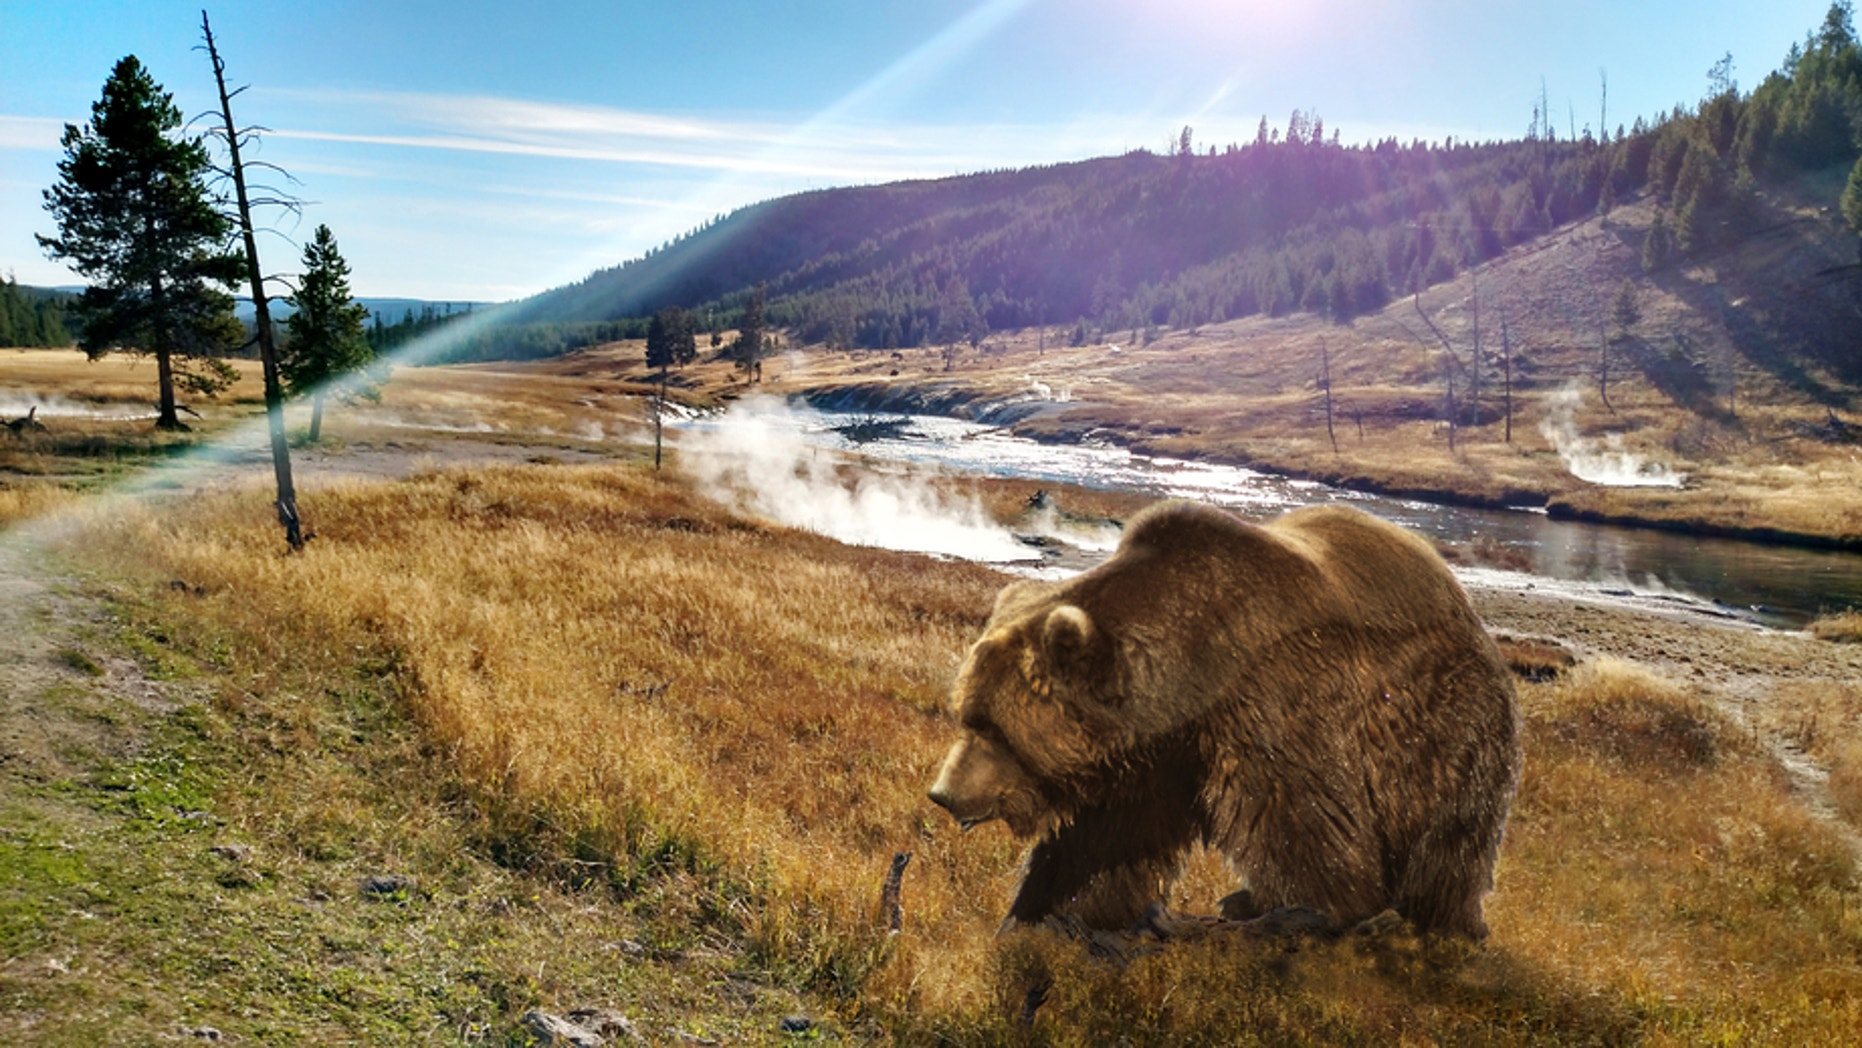 There's more to Yellowstone National Park than you may think.